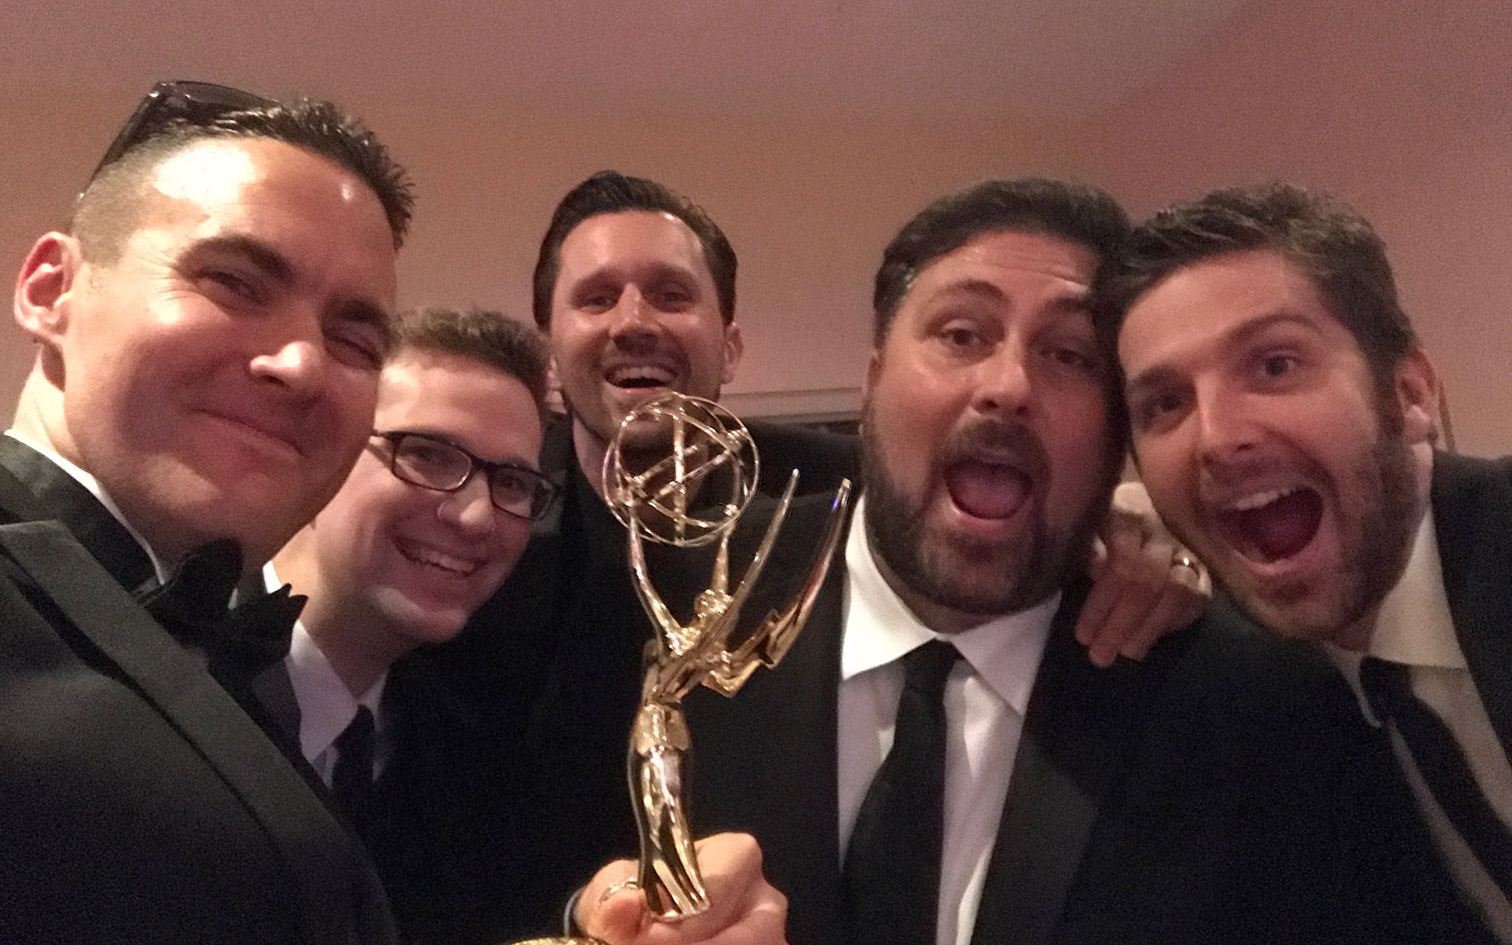 Anthony Carrozzo and Newsday team win an Emmy for Multimedia